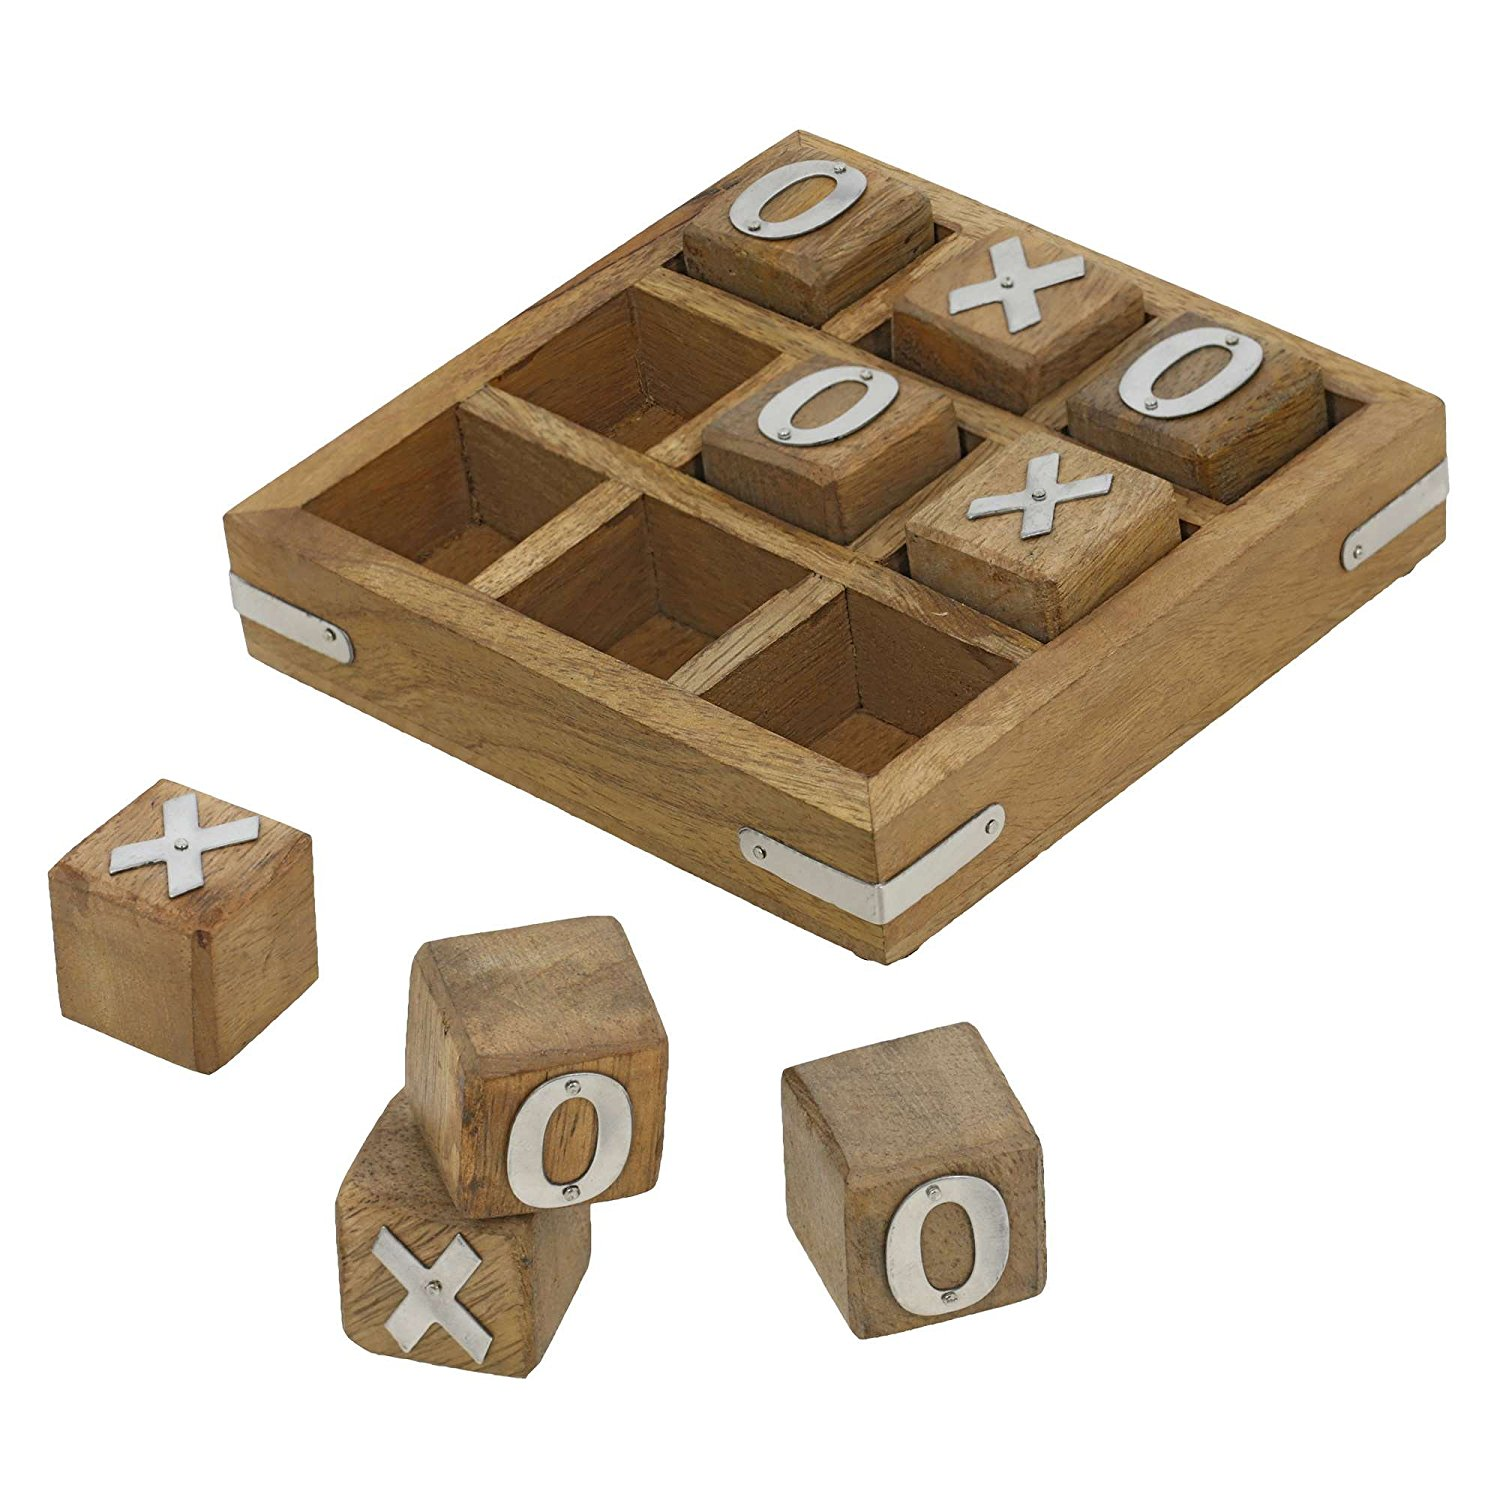 Amazon.com: Handmade Wooden Tic Tac Toe Game for Kids 7 and Up ...